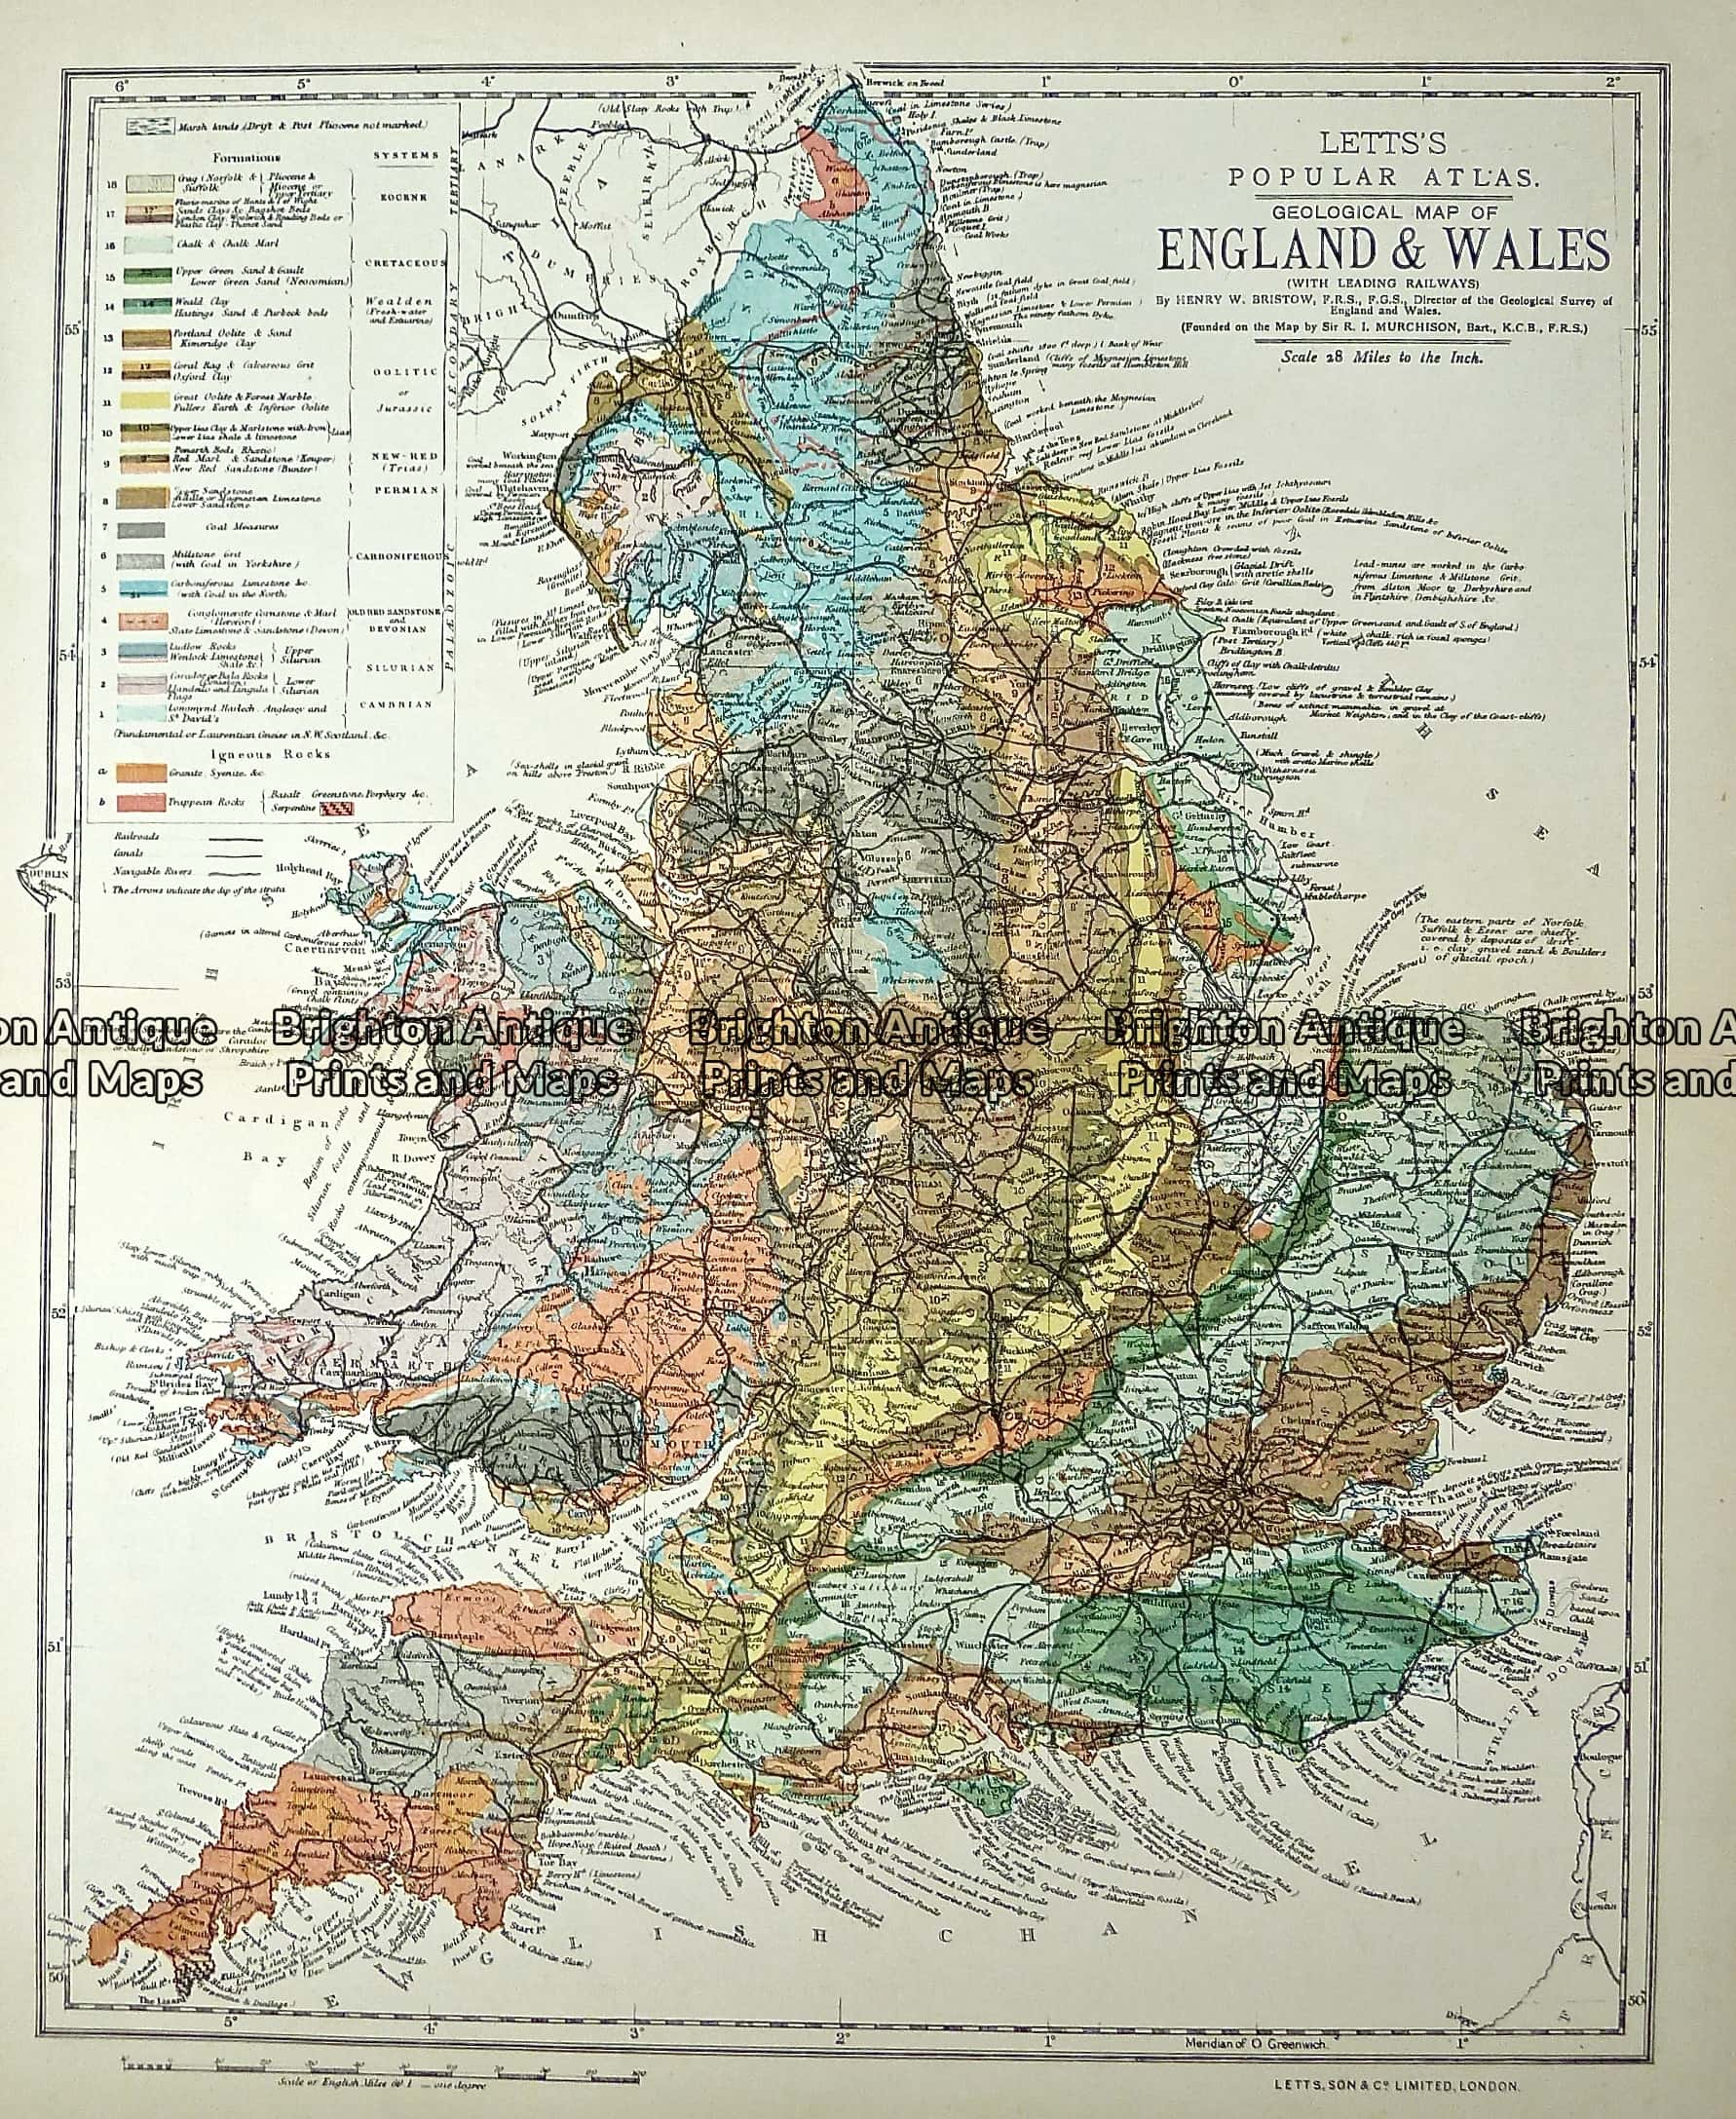 Map Of England Brighton.Antique Map 233 365 Geological Map Of England And Wales By Letts C 1880 Brighton Antique Prints And Maps Shop Buy Now